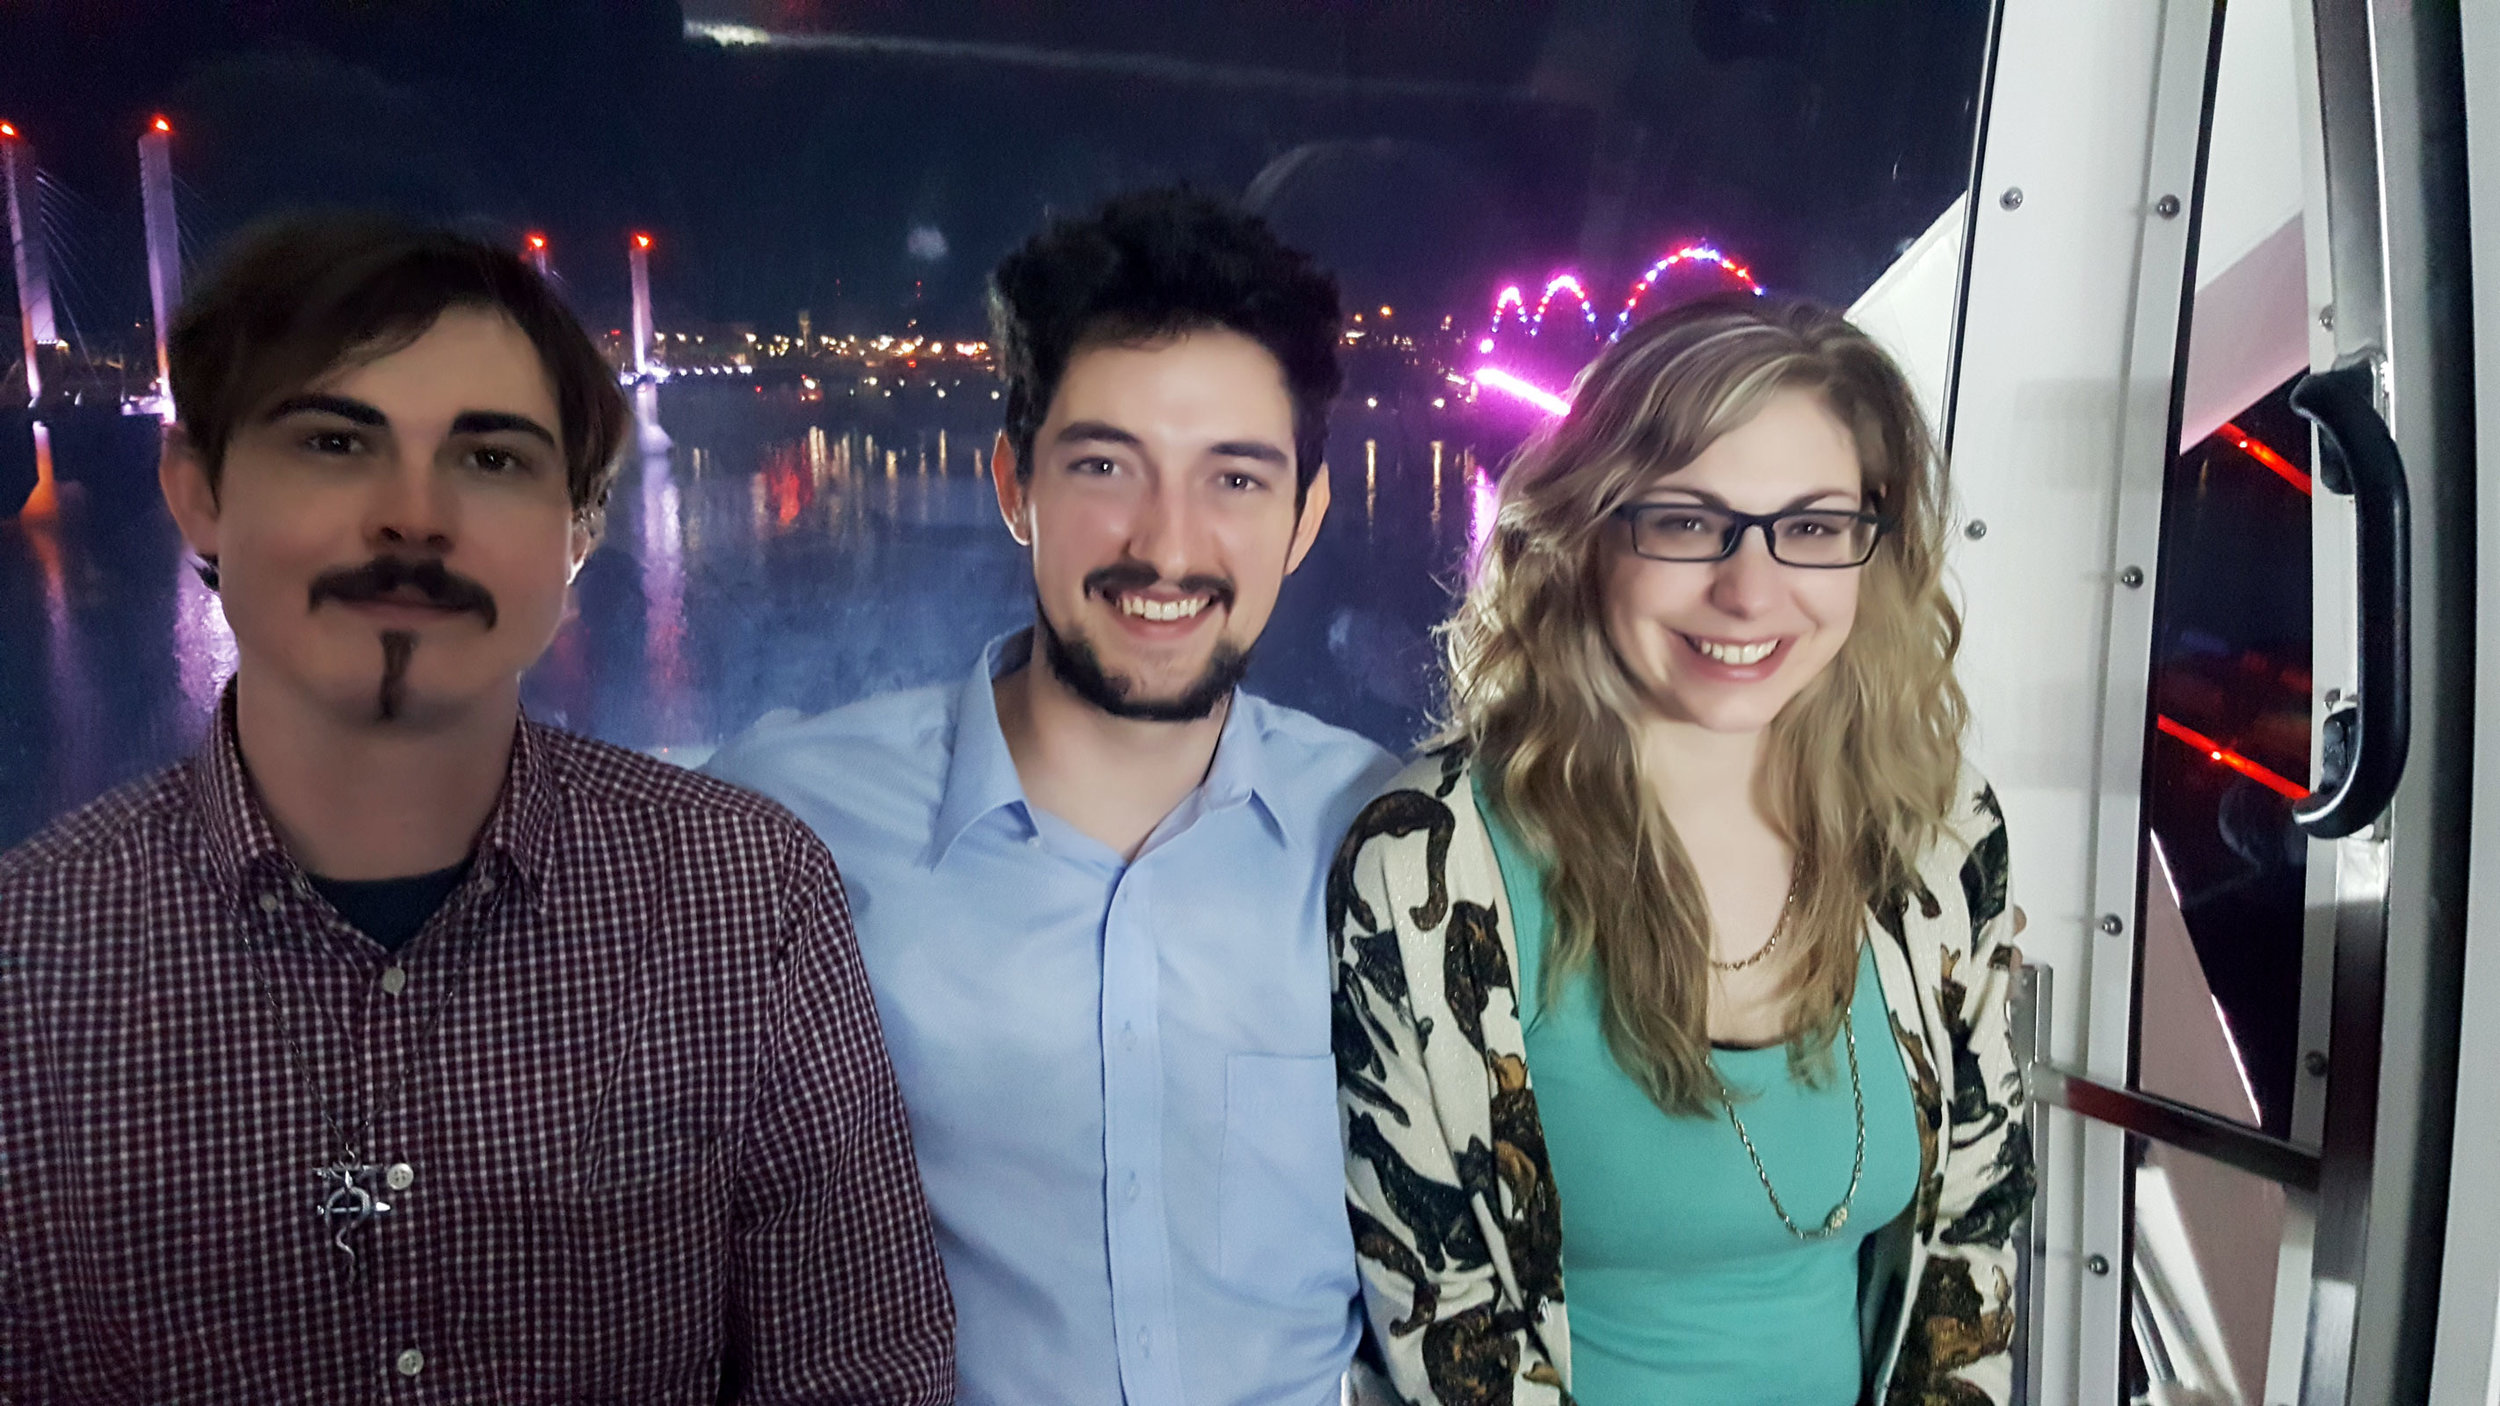 Richard, Jody, and Mariah celebrating a successful Kickstarter launch on the Ferris wheel overlooking the Ohio River in Downtown Louisville, KY!